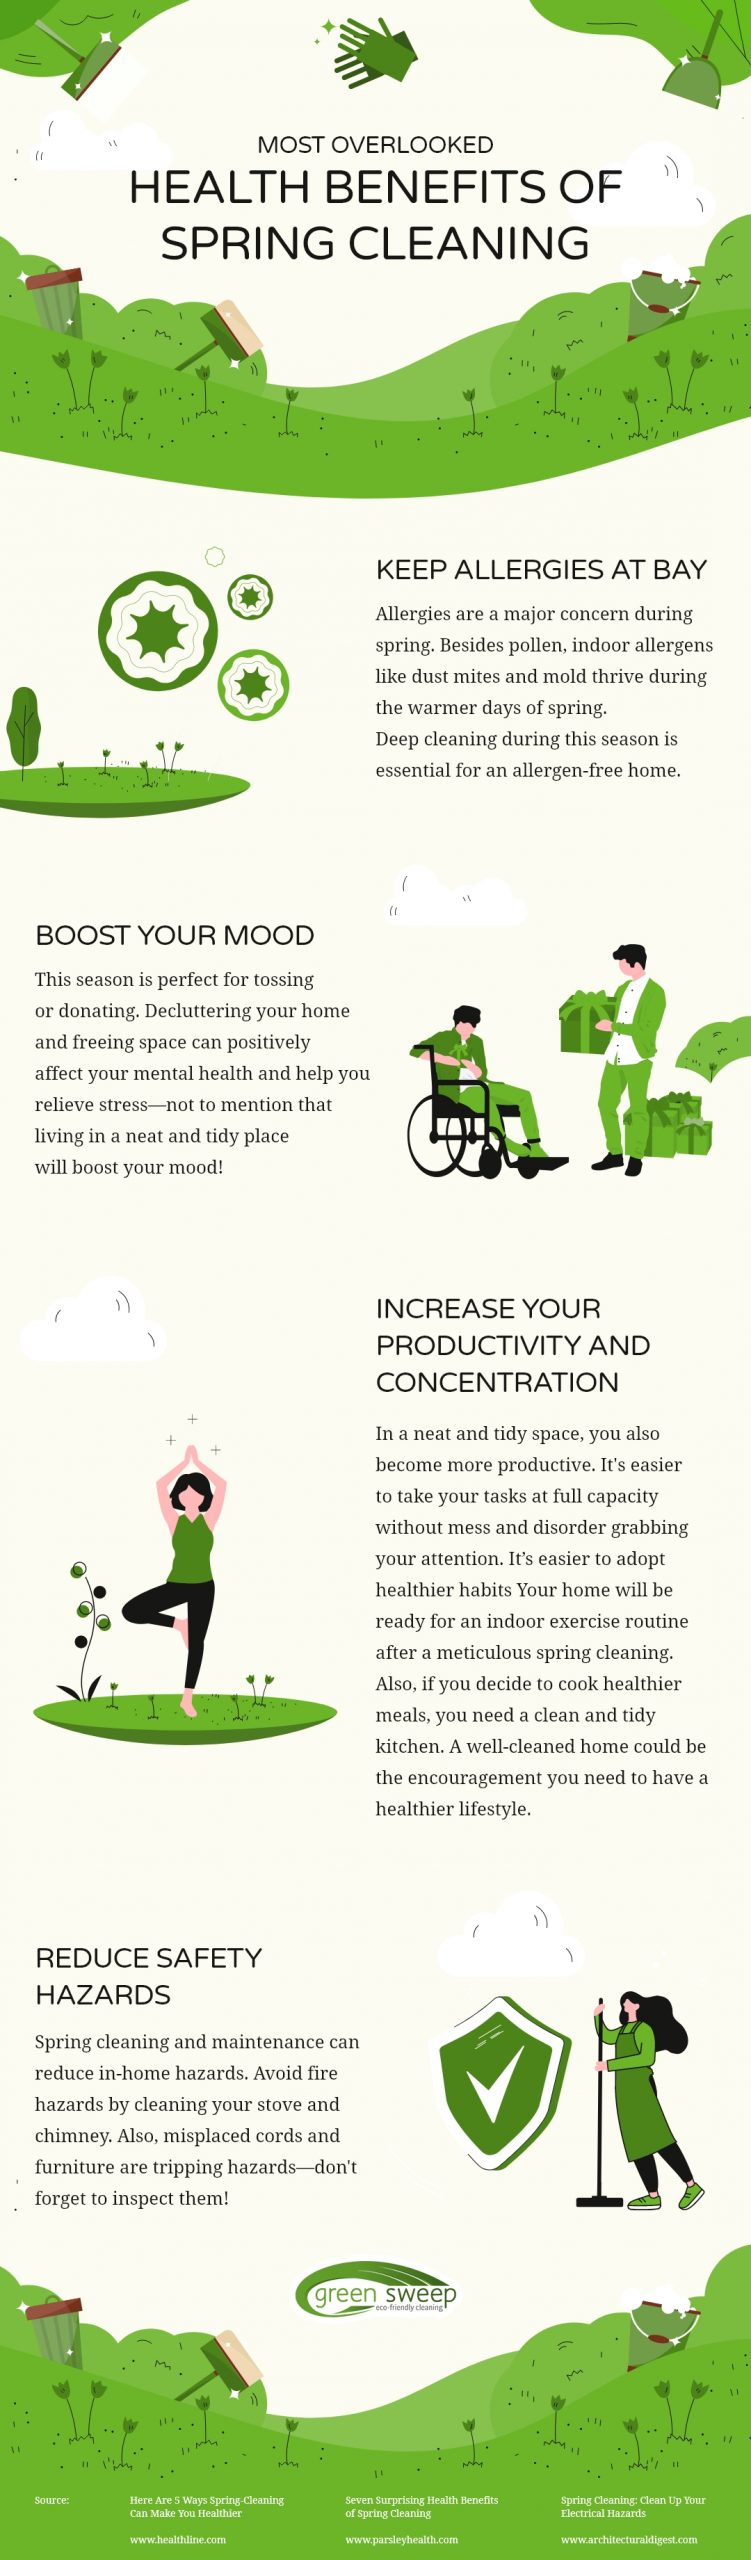 Health Benefits Of Spring Cleaning